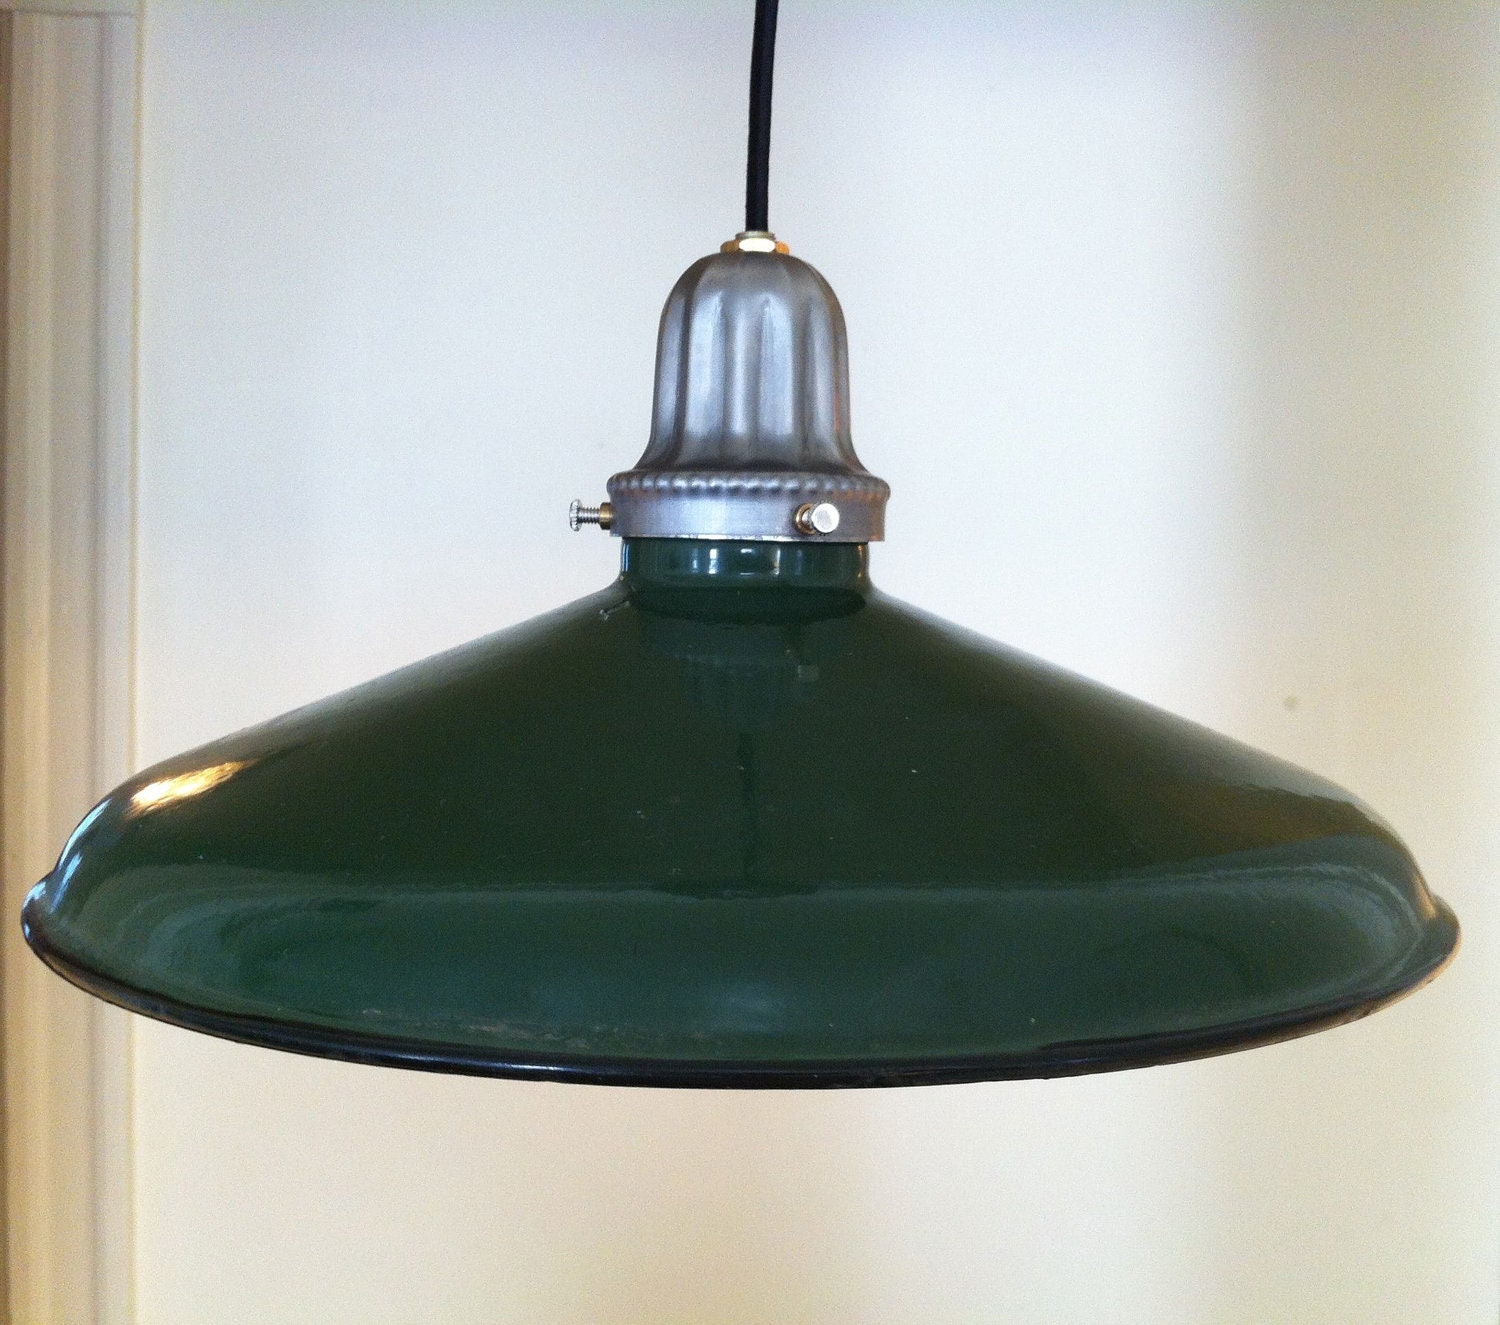 Vintage, Industrial, Porcelain Enamel, Green Gas Station Light, Pendant, Hard Wire, Barn Light